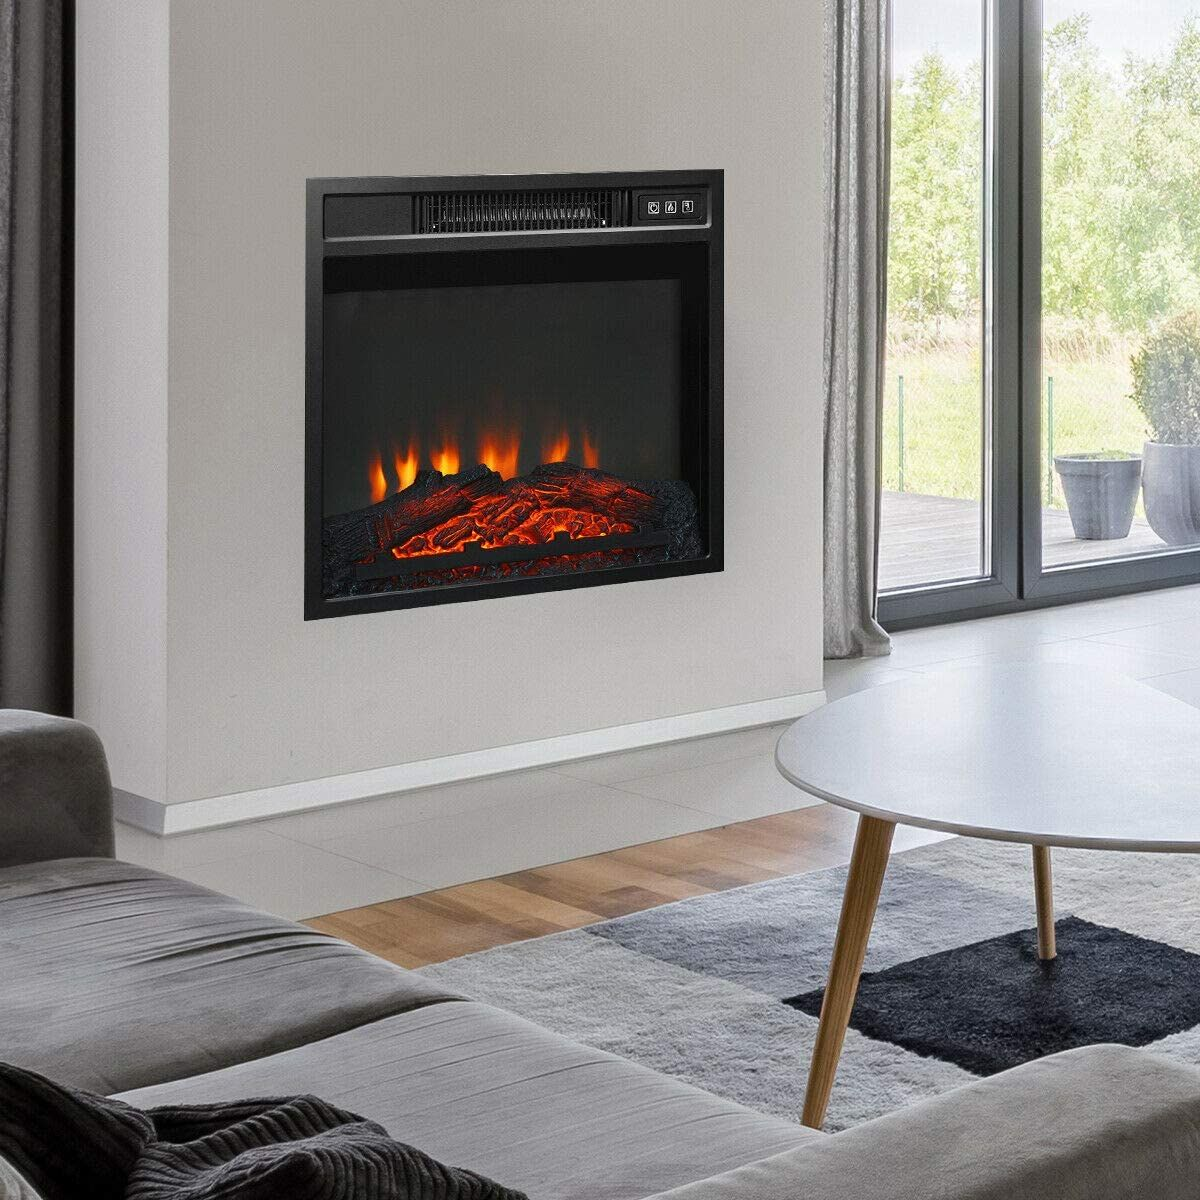 Kovalenthor 18 Electric Fireplace Freestanding Wall Mounted Heater Log Flame Multicolor Led Flame In 2020 Wall Mounted Heater Best Space Heater Free Standing Wall